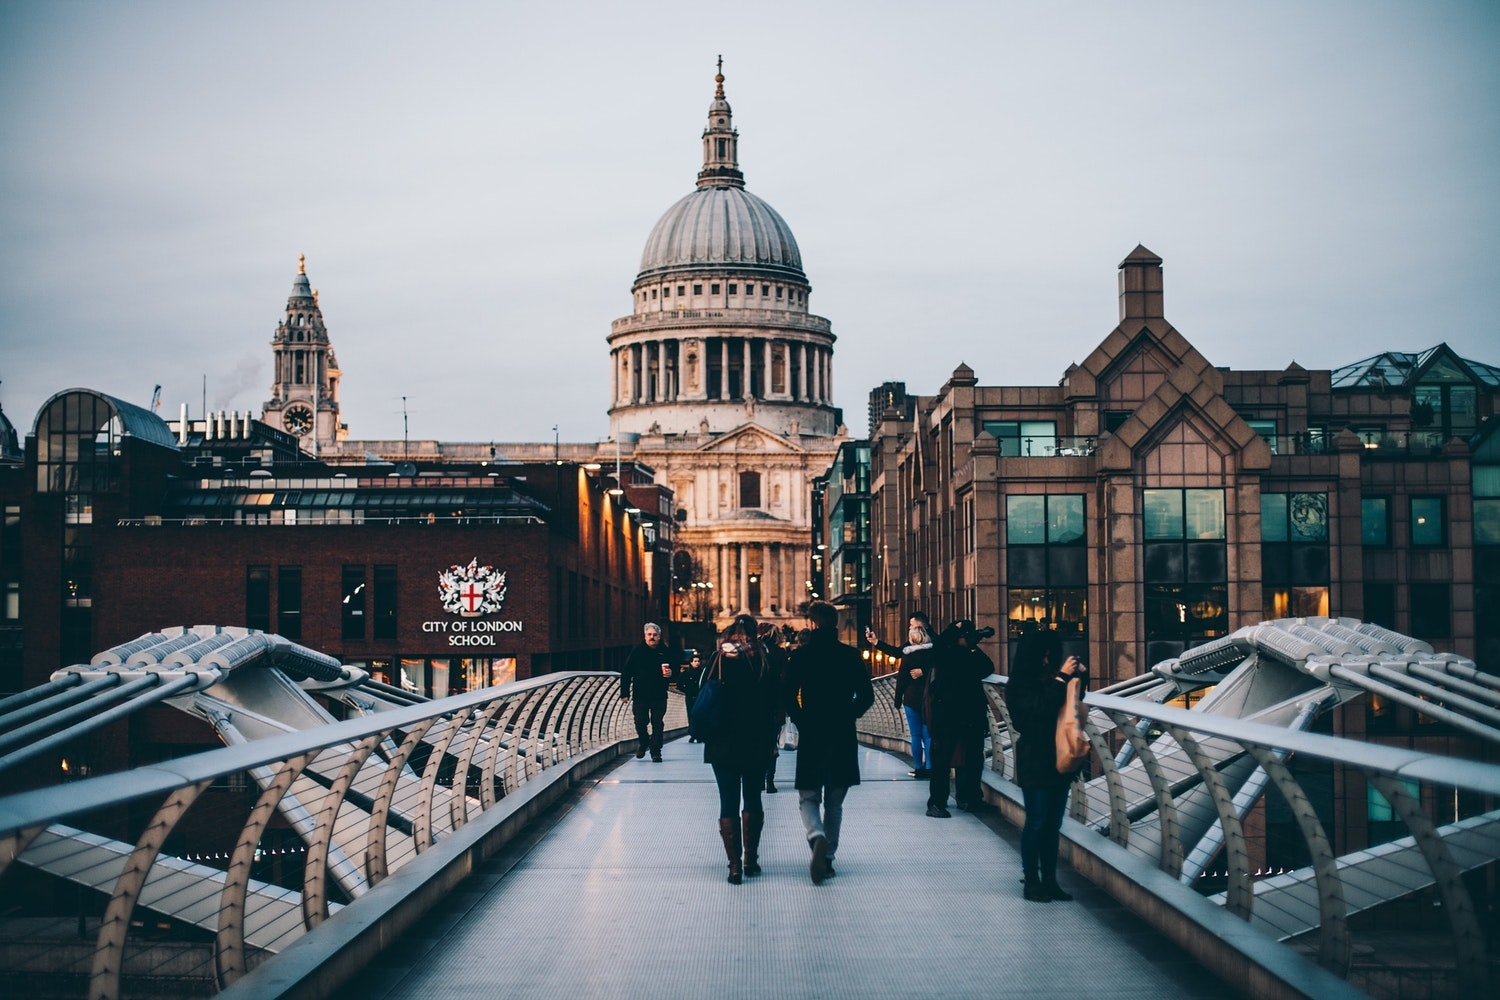 5 Ways To Make The Best Out Of London On A Budget